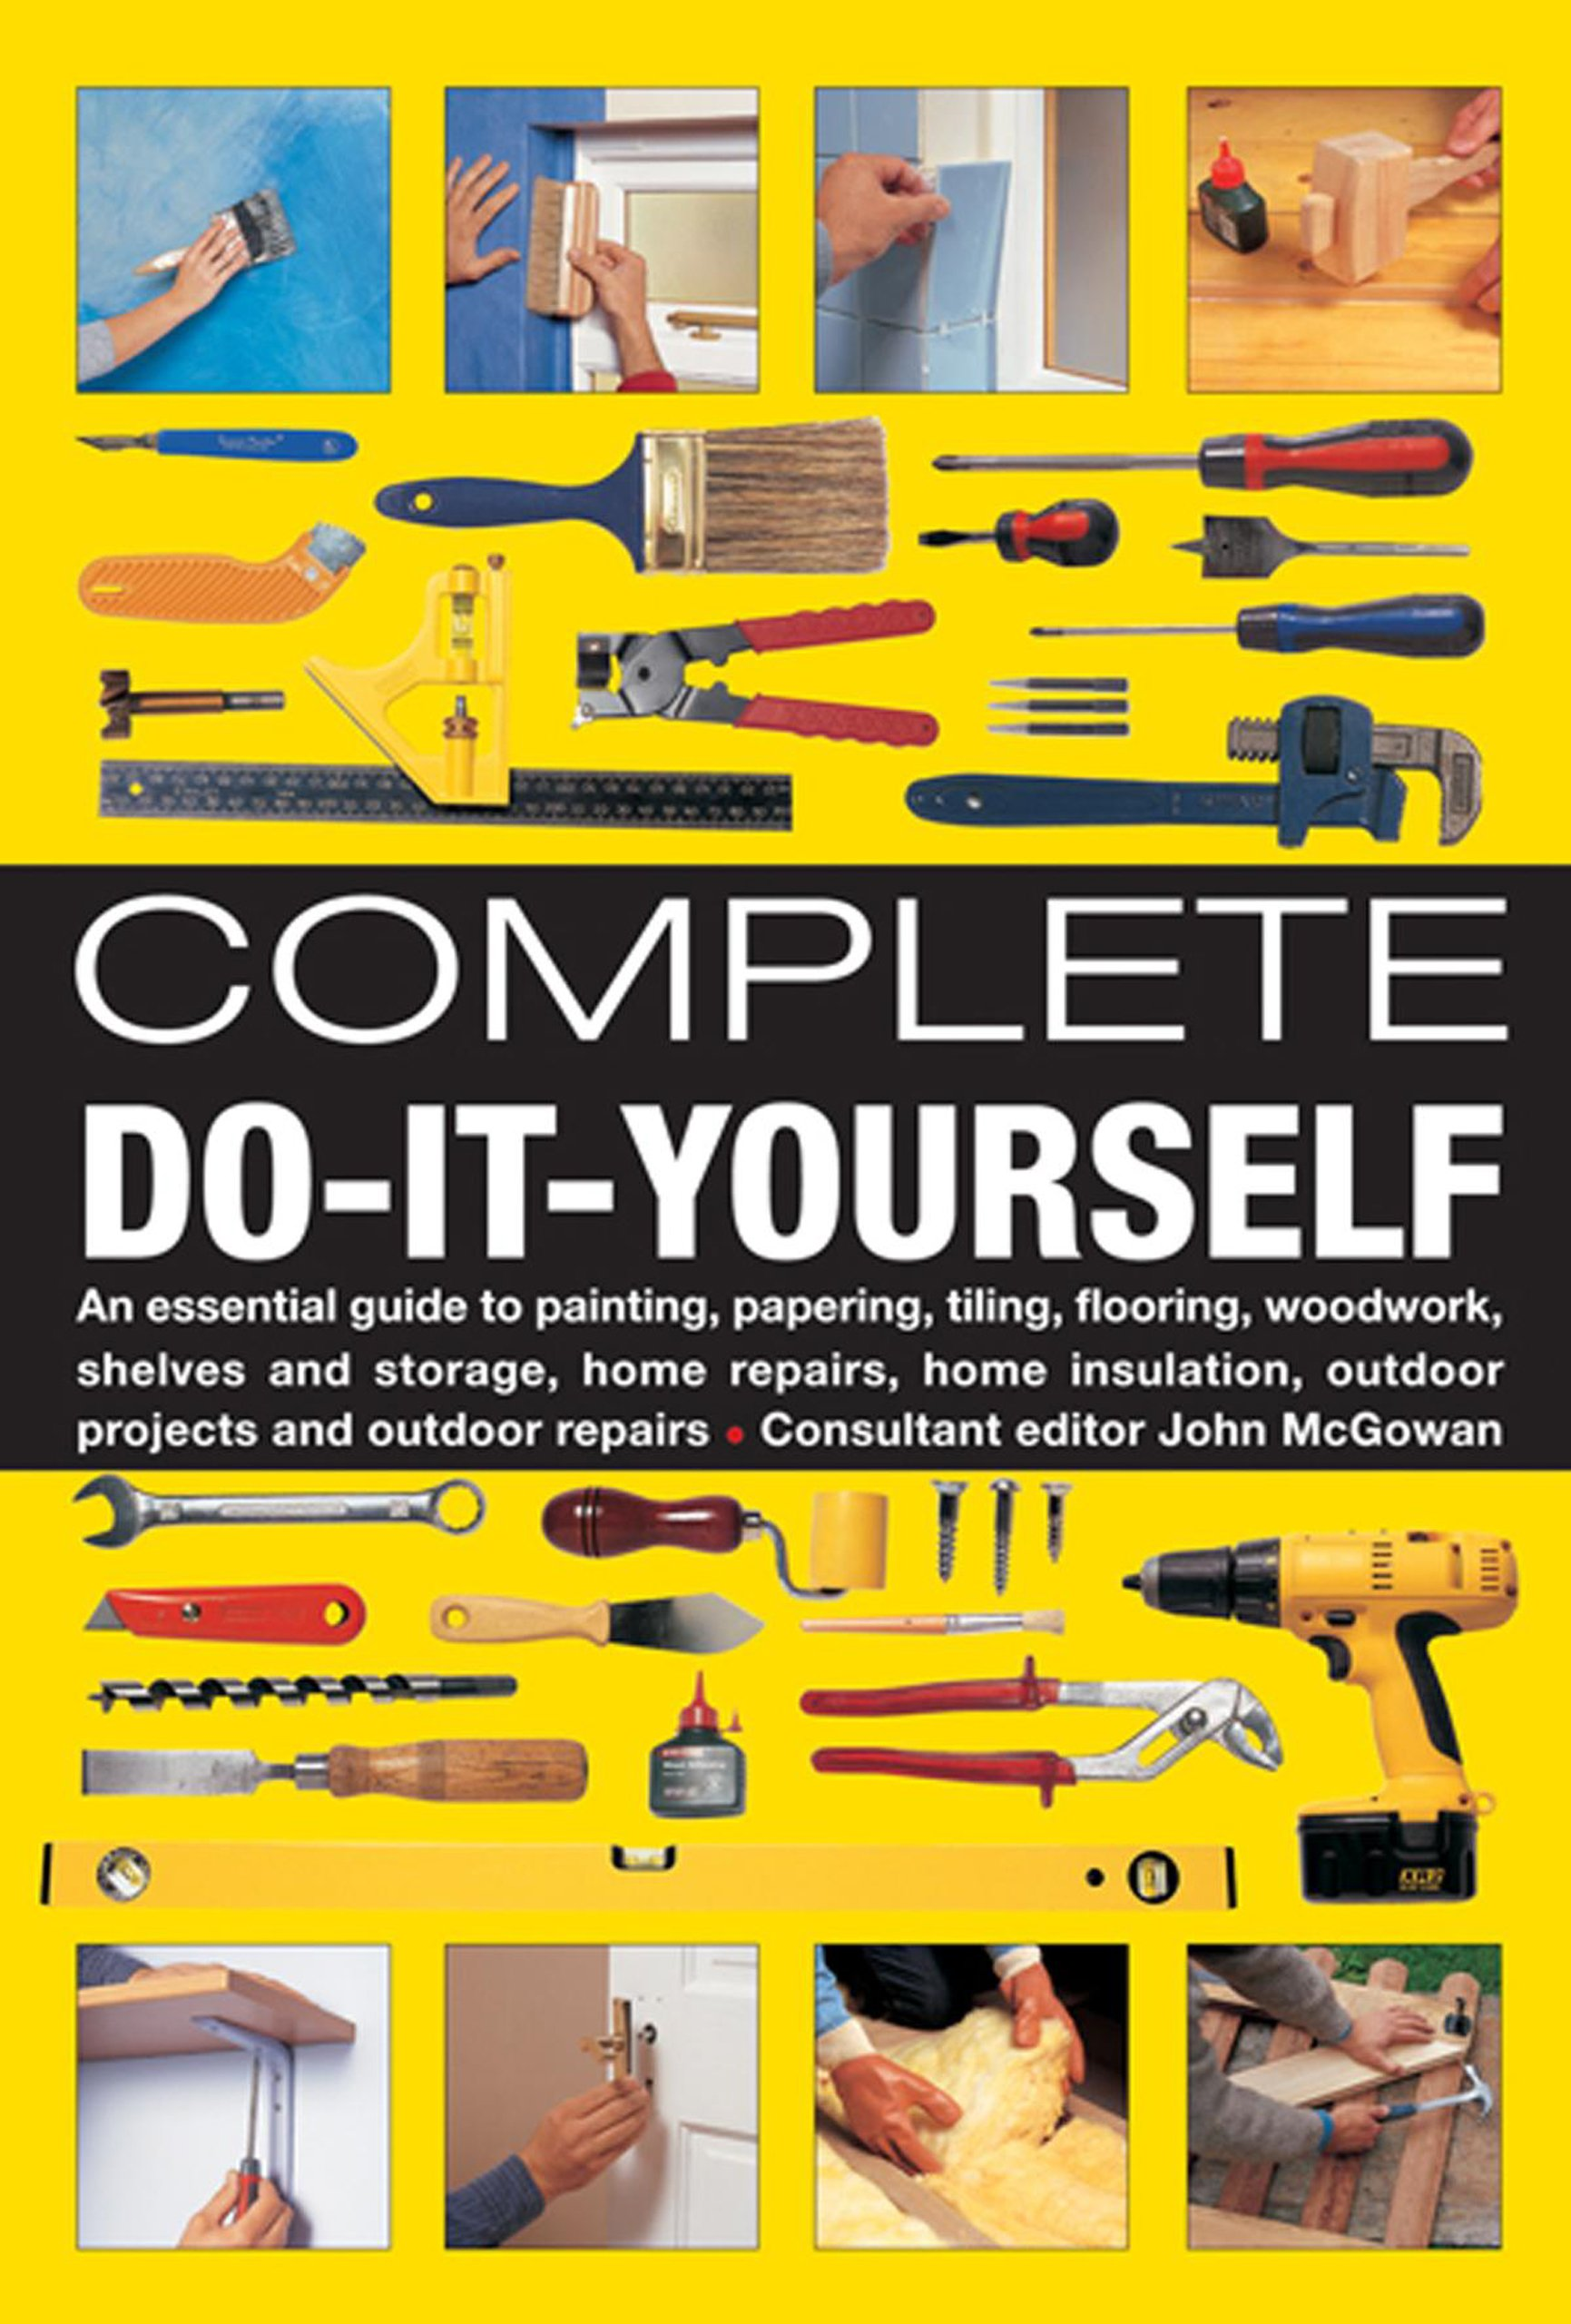 Complete Do-It-Yourself: An Essential Guide To Painting, Papering, Tiling, Flooring, Woodwork, Shelves And Storage, Home Repairs, Home Insulation, Outdoor Projects And Outdoor Repairs ebook